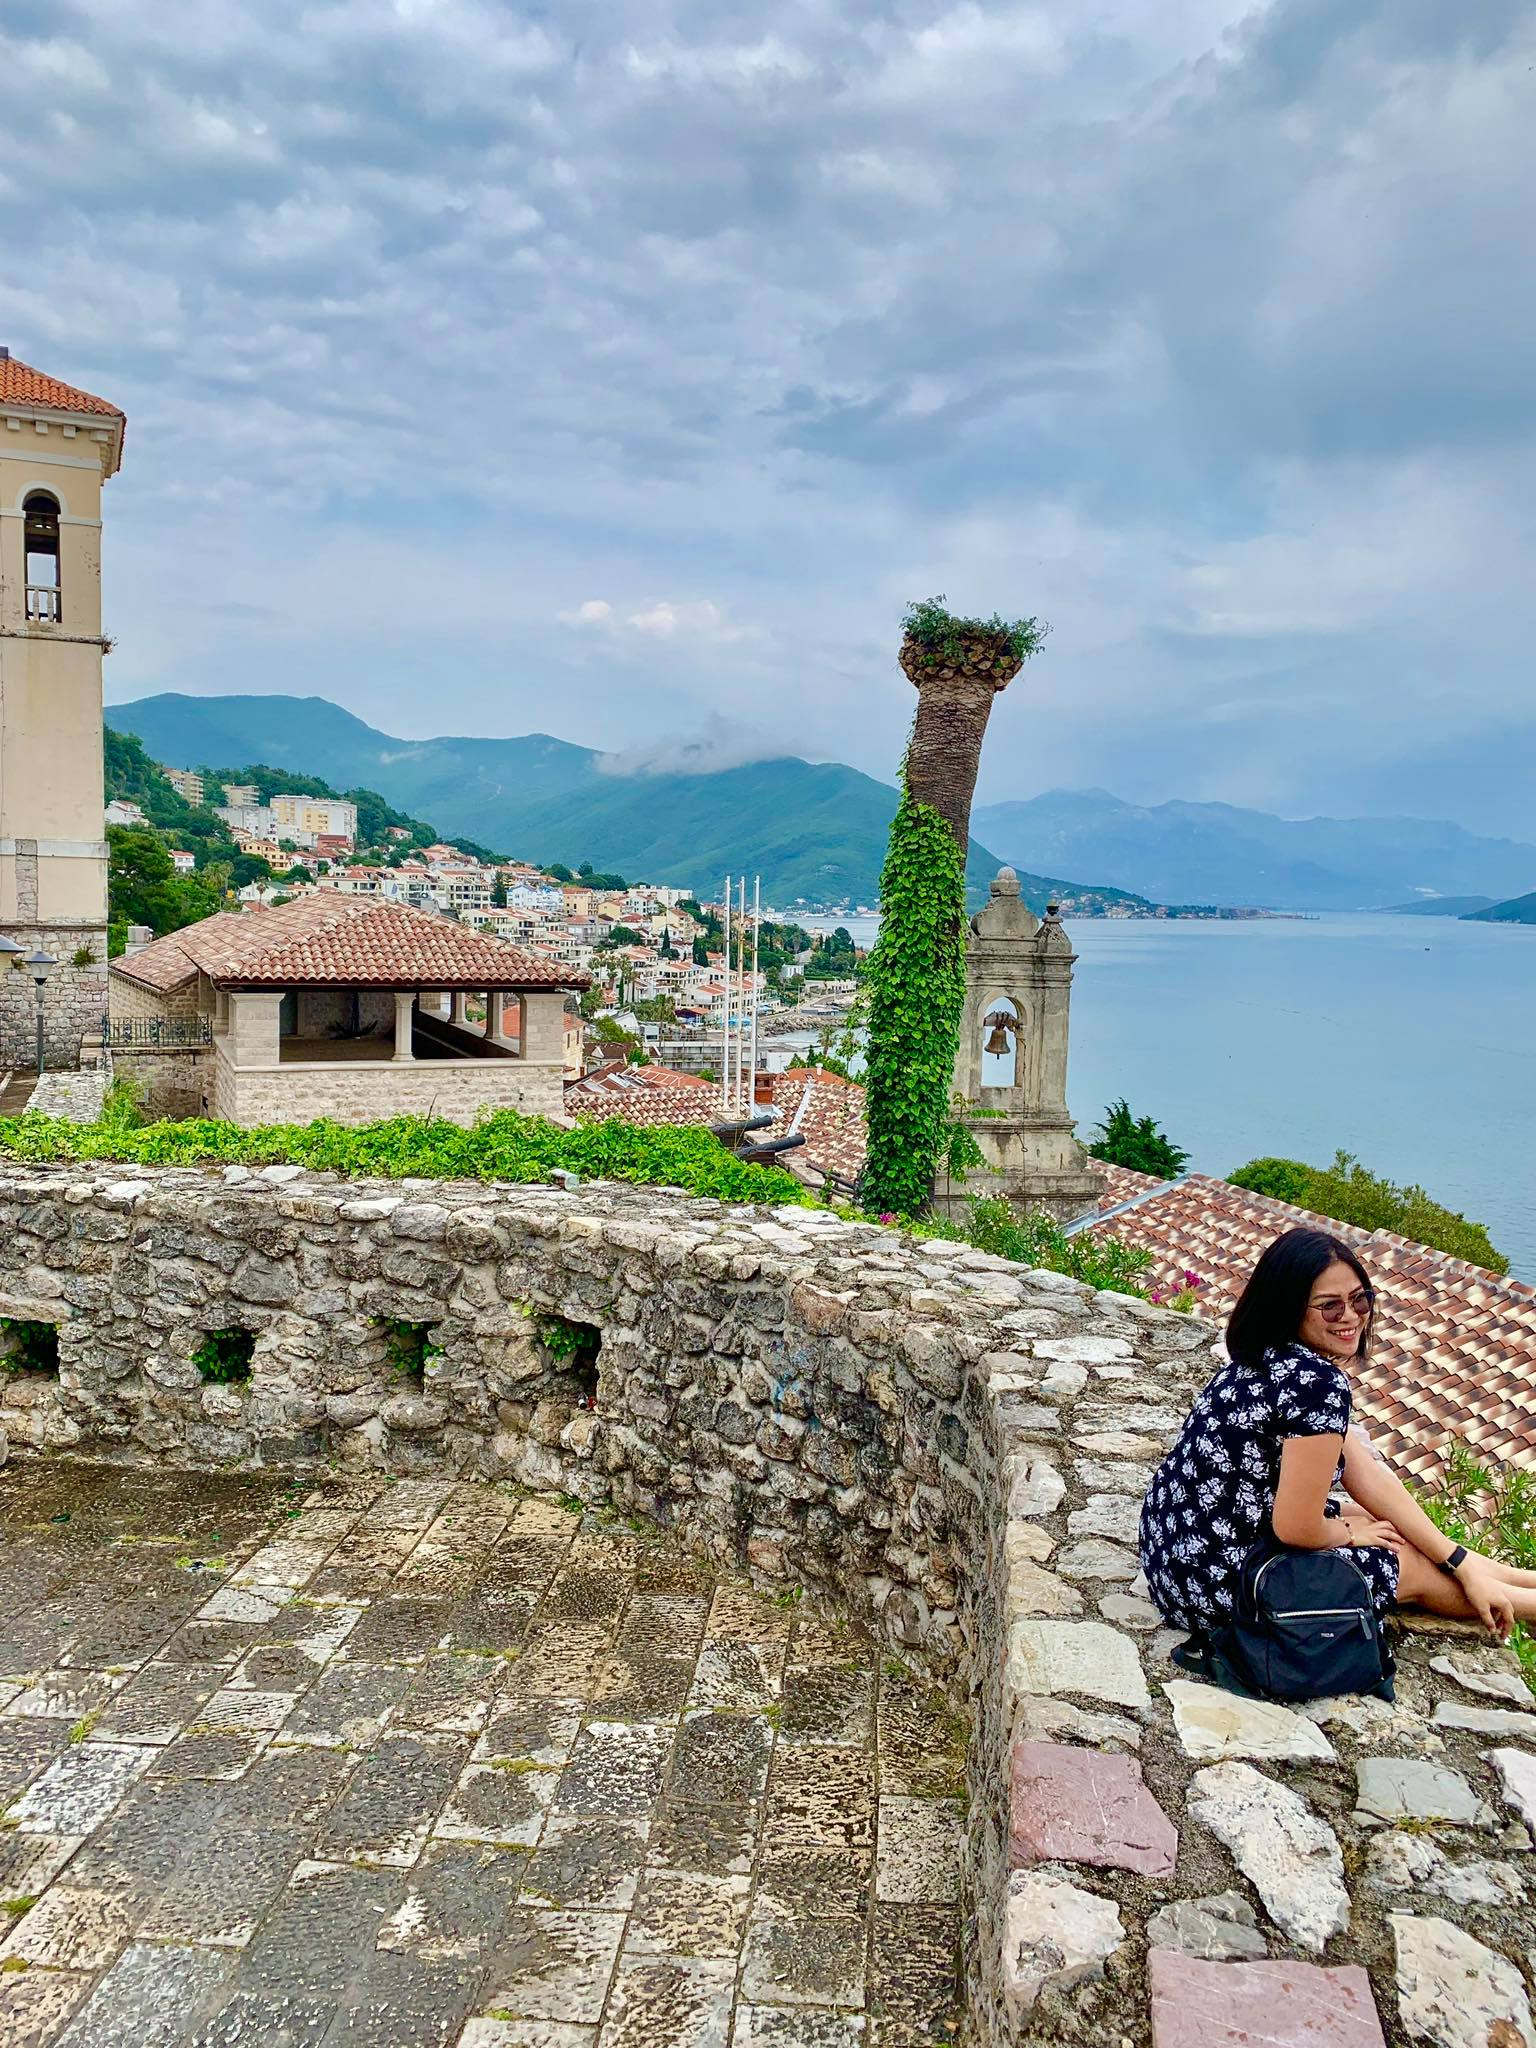 Expat Life in Montenegro Day 3 We have our first visitor already in our new home here in Herceg Novi15.jpg